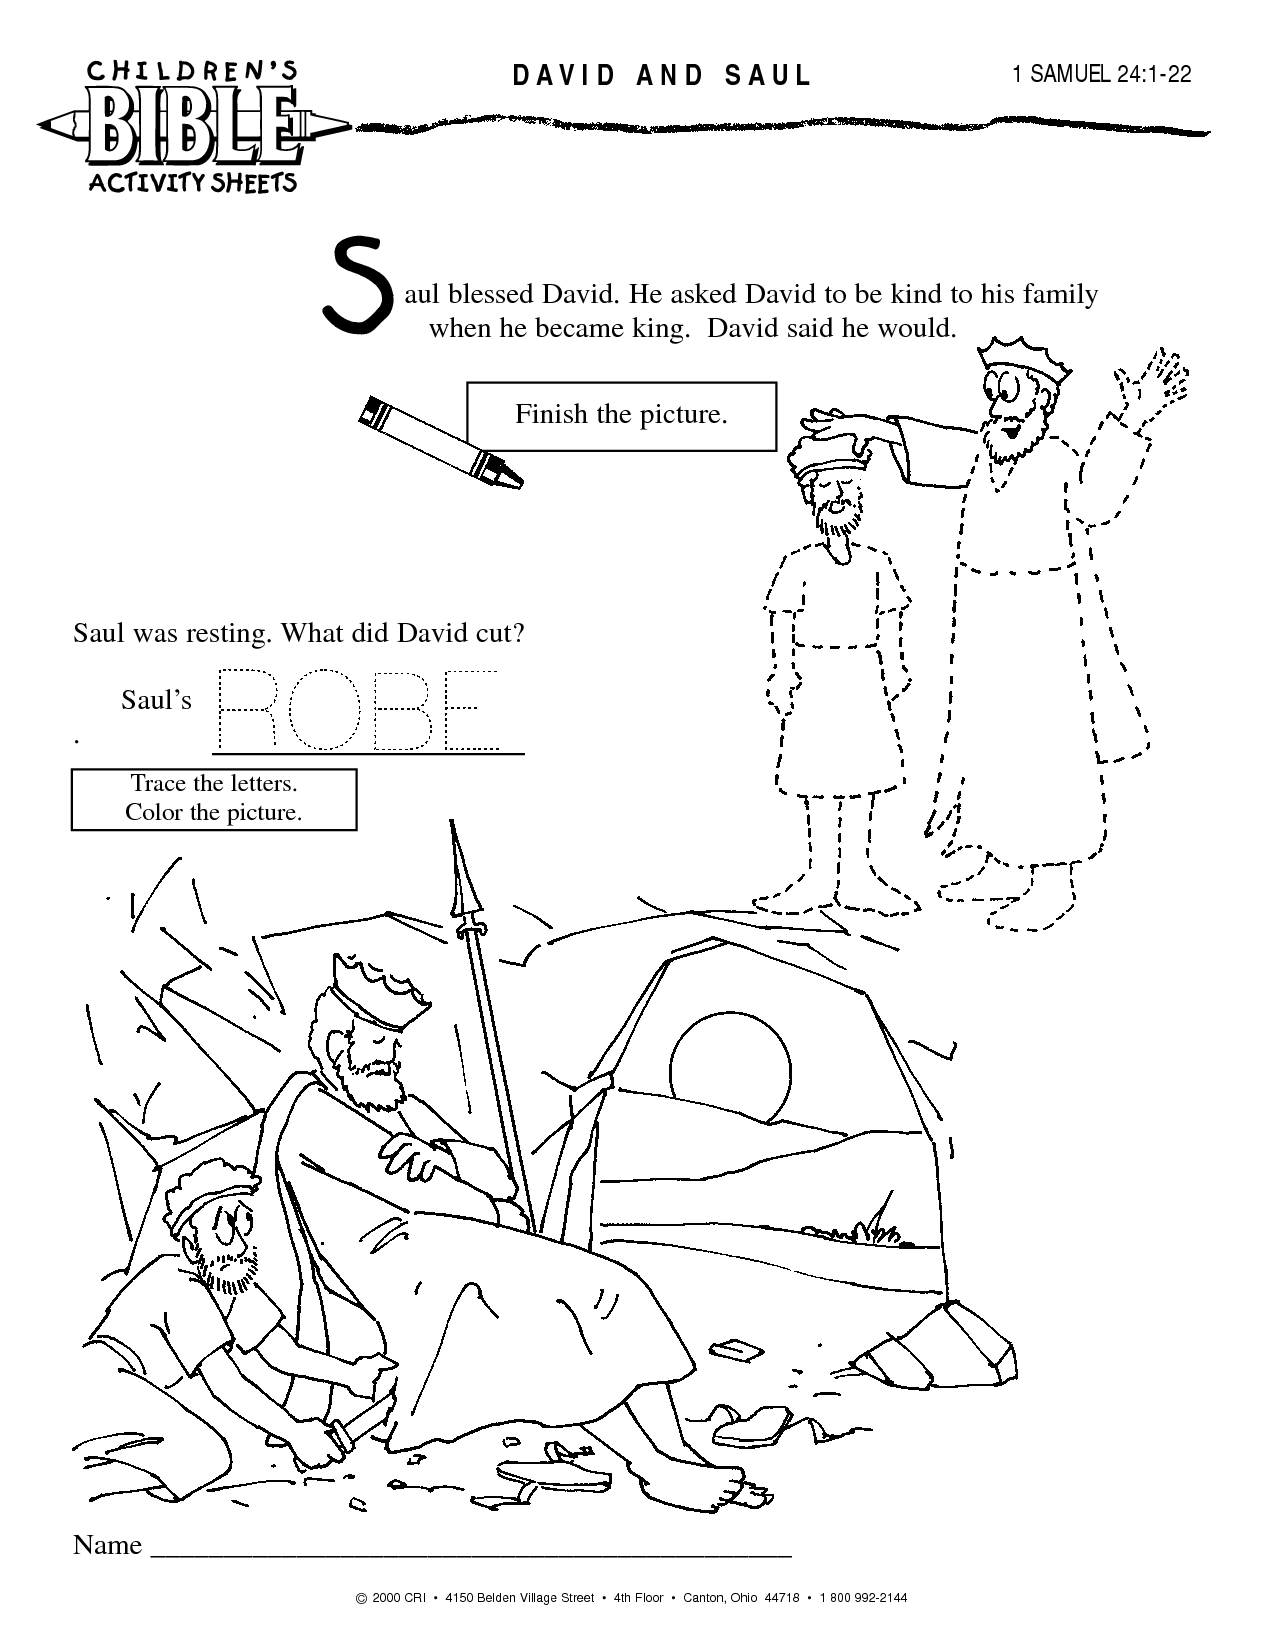 Saul Hides In Cave Preschool Show Me More David Saul Cave Colouring Pages Saul